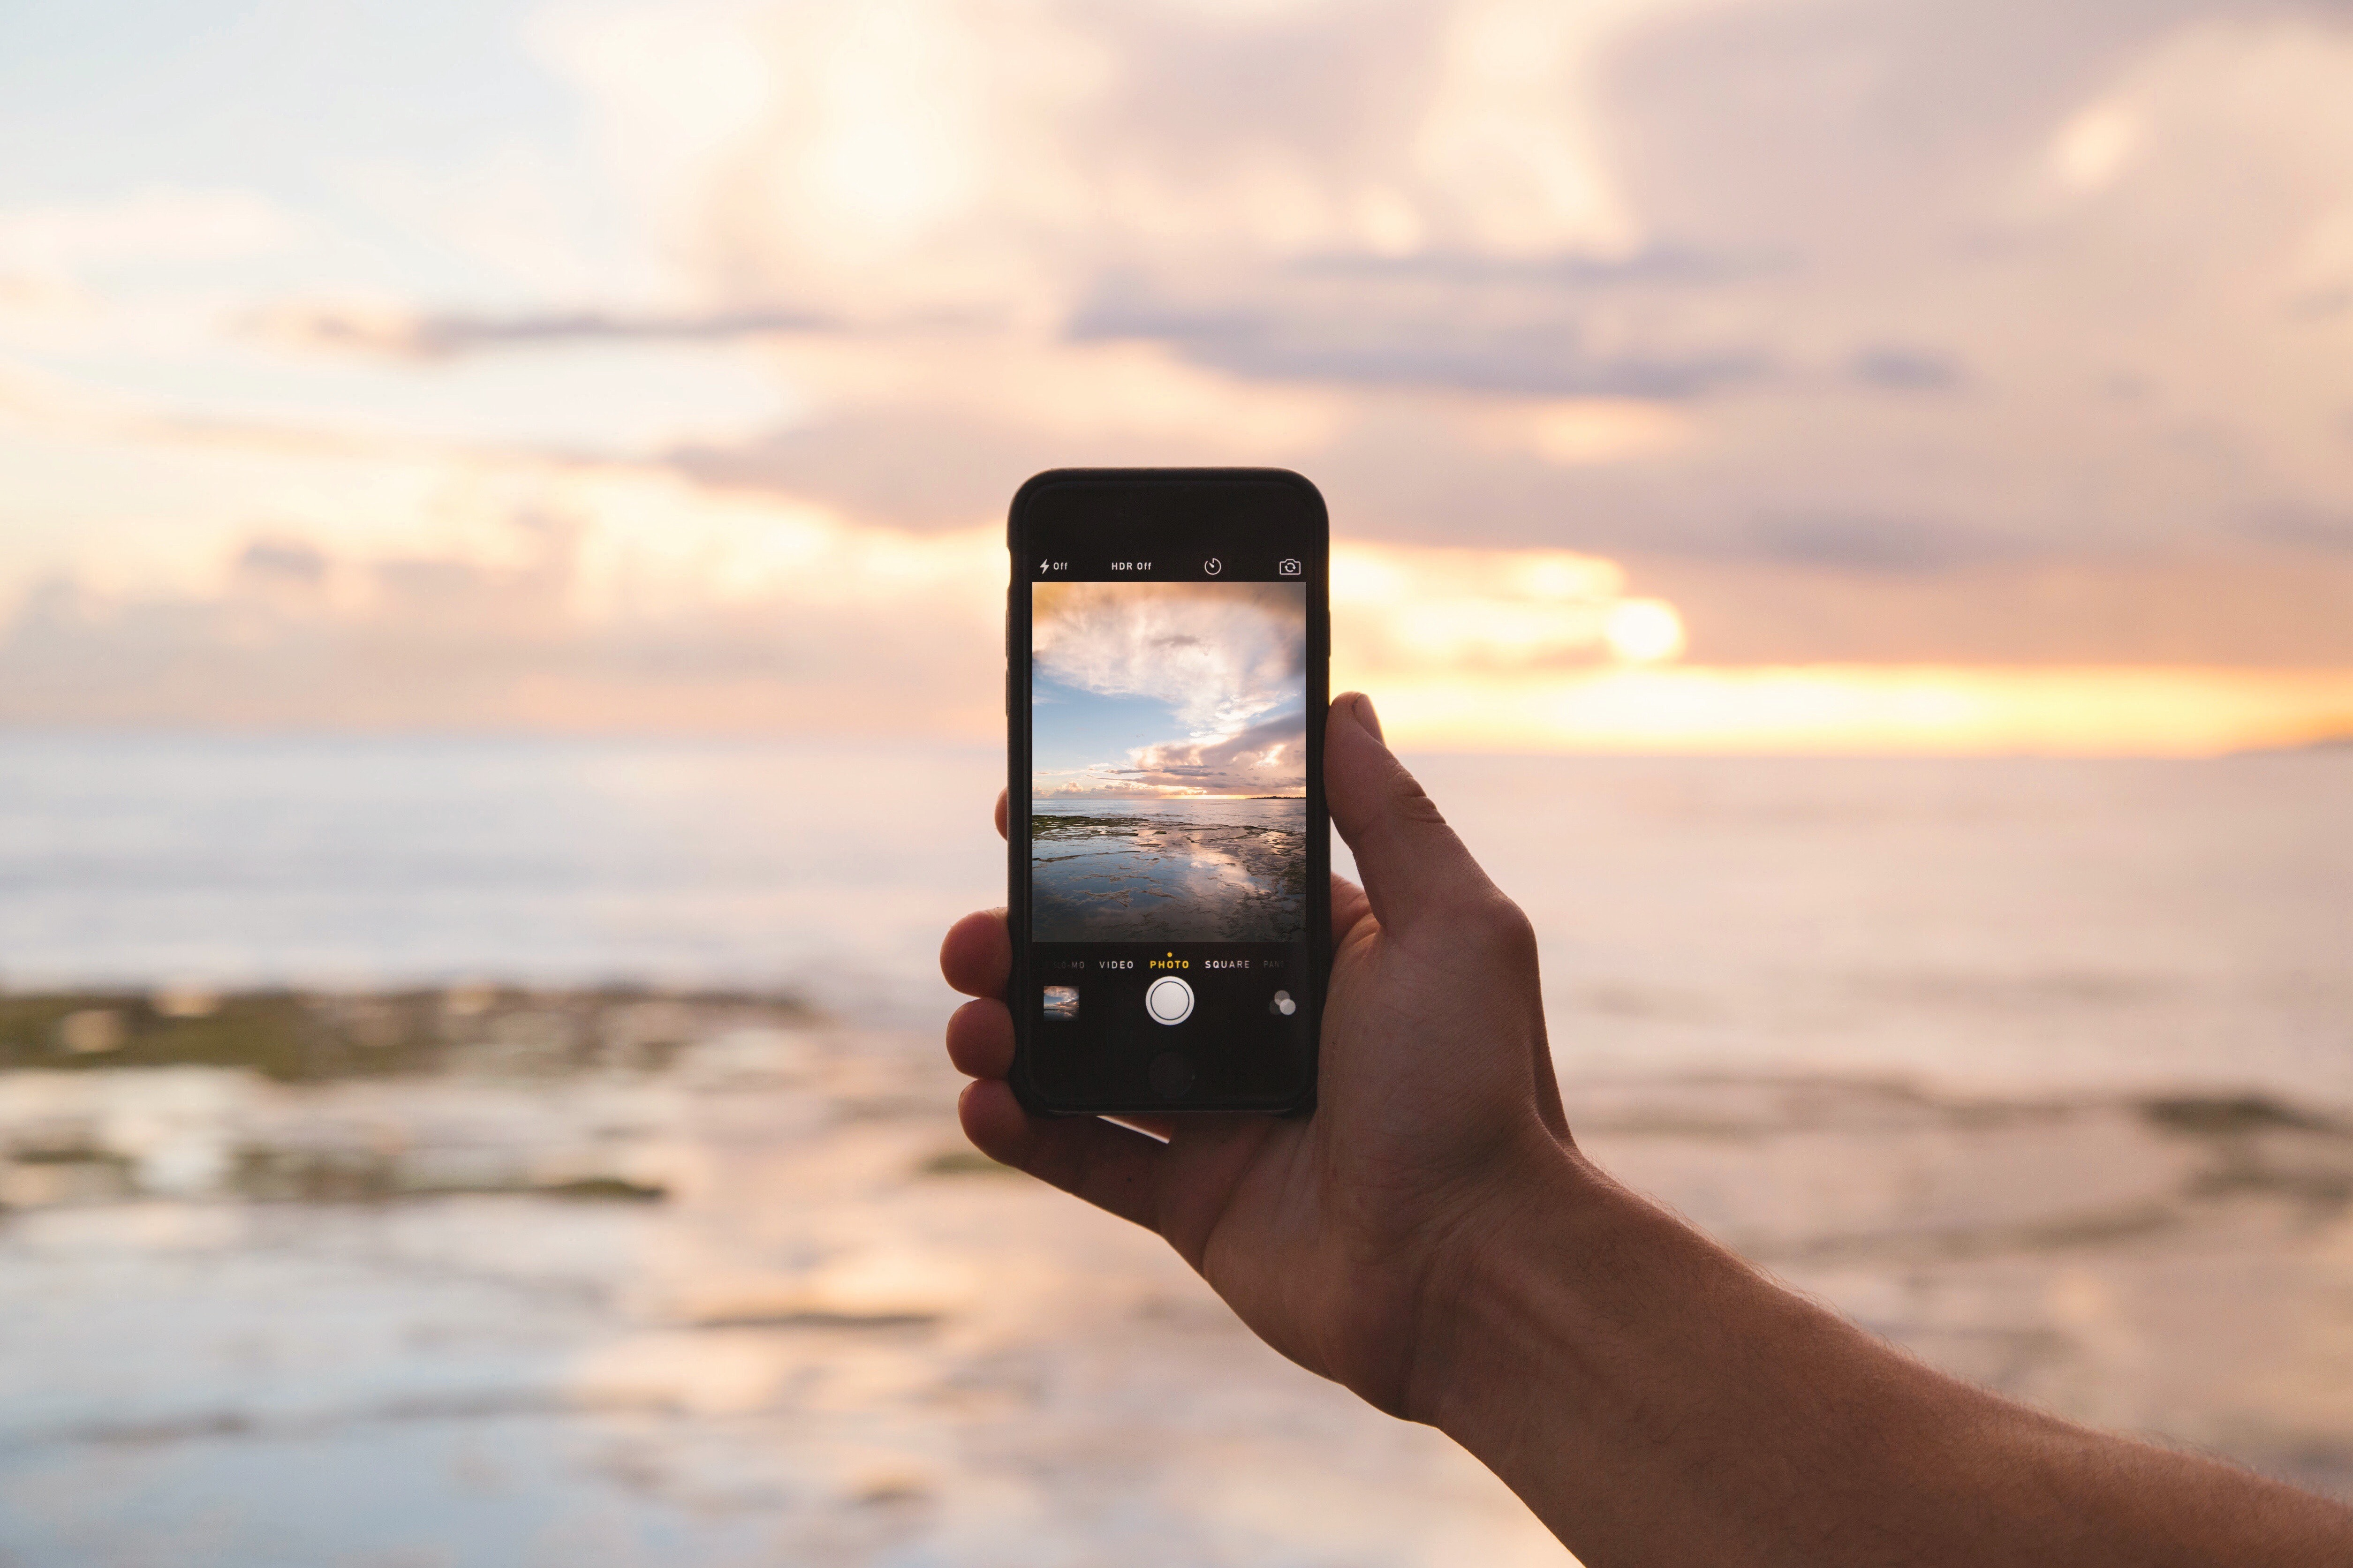 UCTech-2019-UCSB-photography-contest-beach-phone-camera